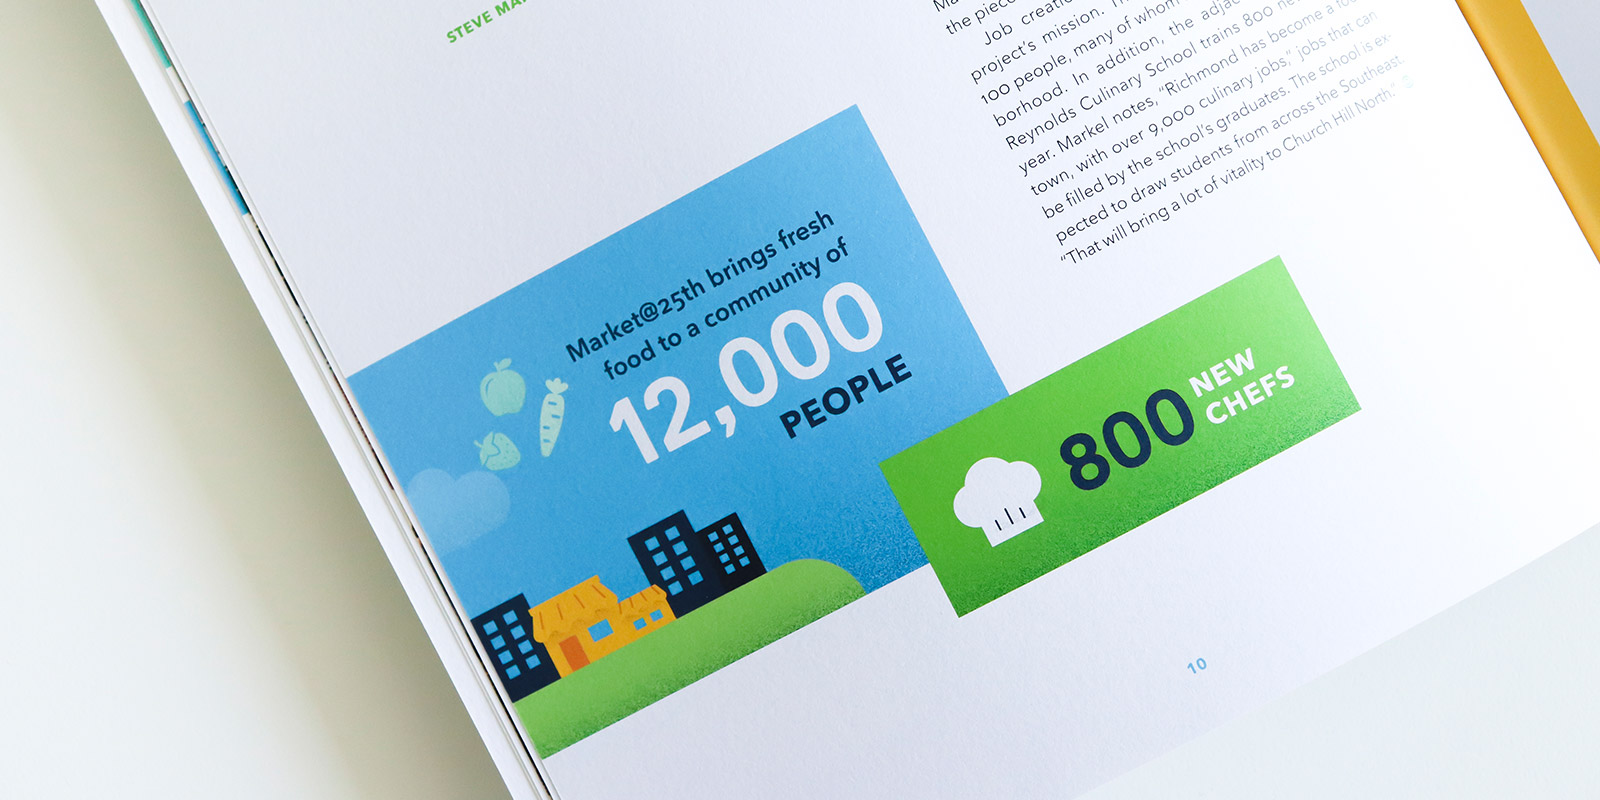 Bluehub Capital annual report design